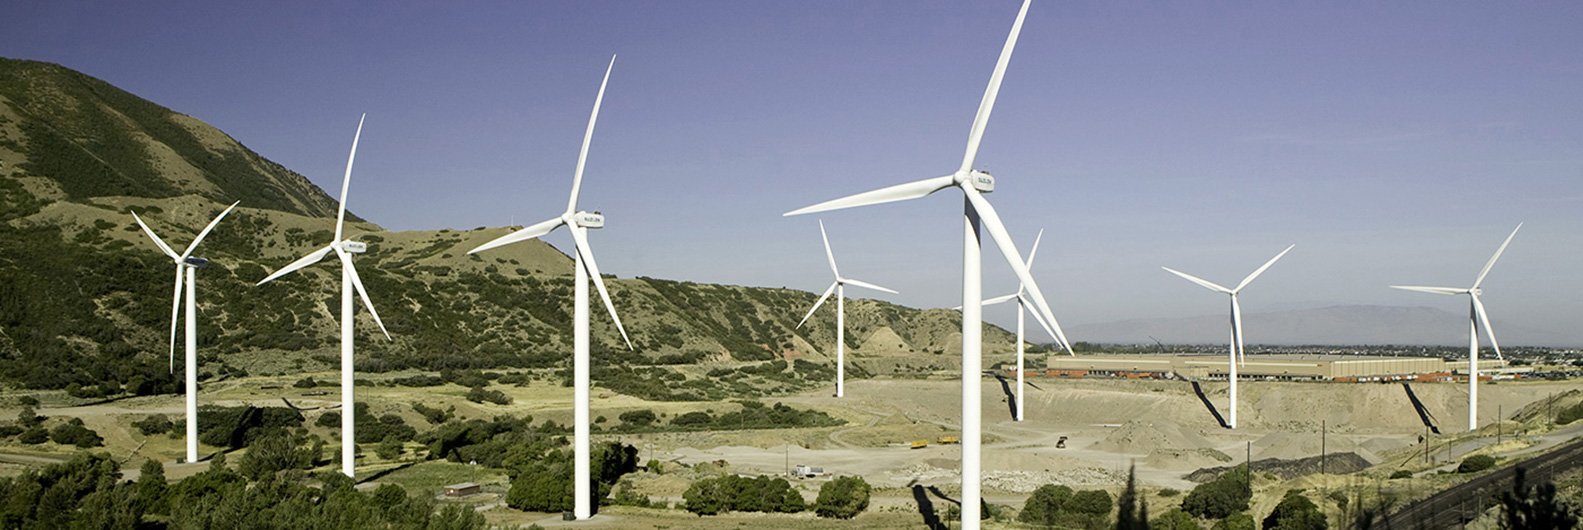 Suzlon's Wind Farm